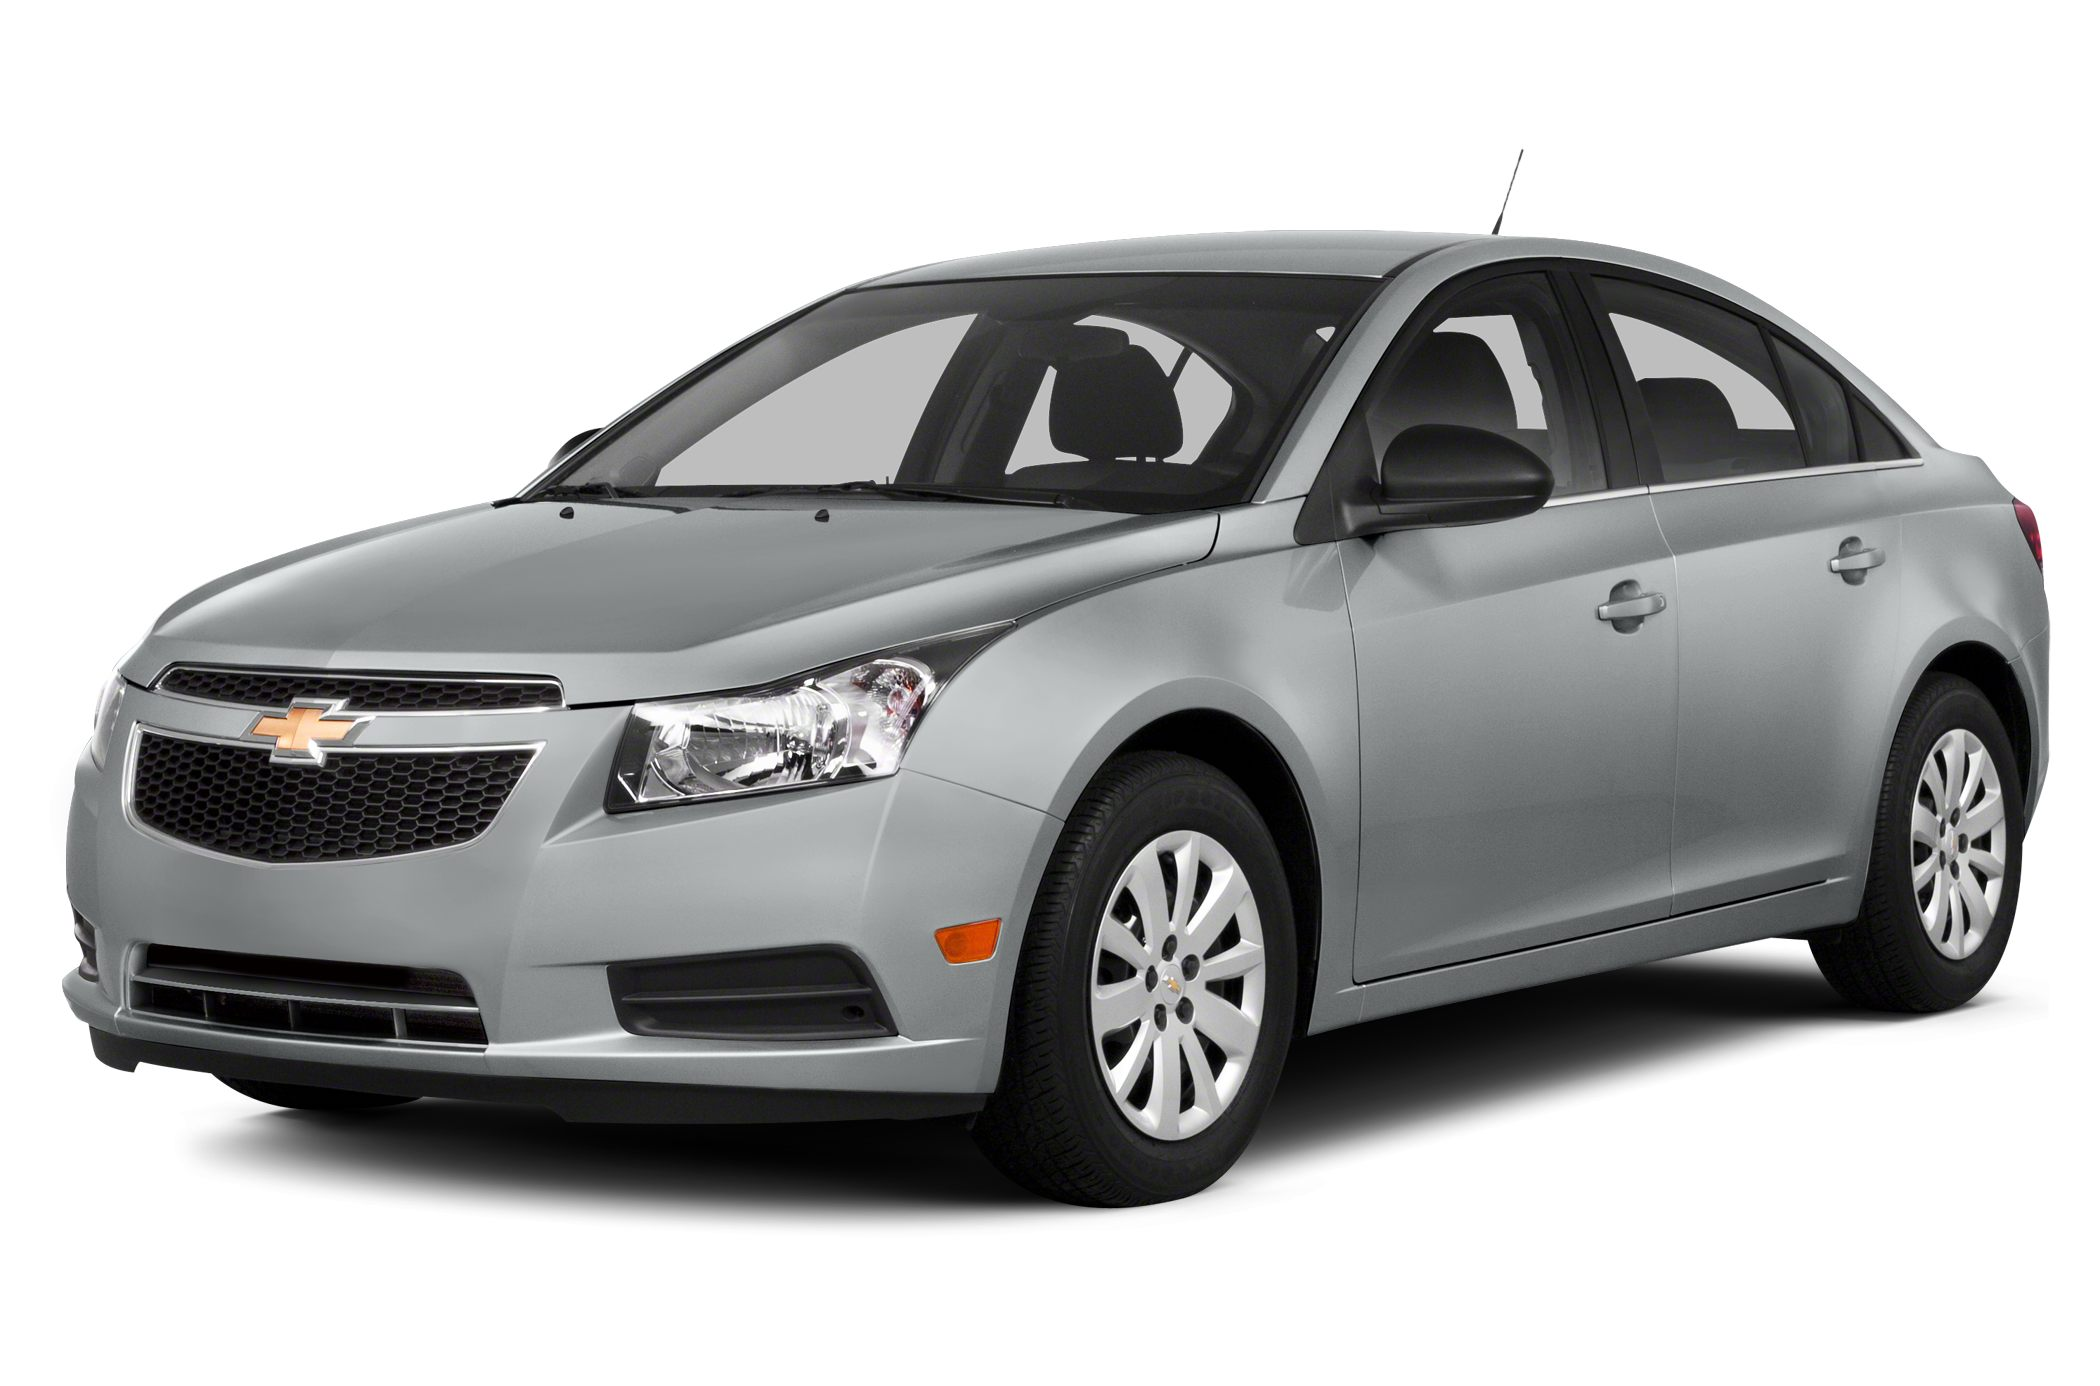 2014 Chevrolet Cruze LS CARFAX 1-Owner FUEL EFFICIENT 35 MPG Hwy22 MPG City LS trim CD Player